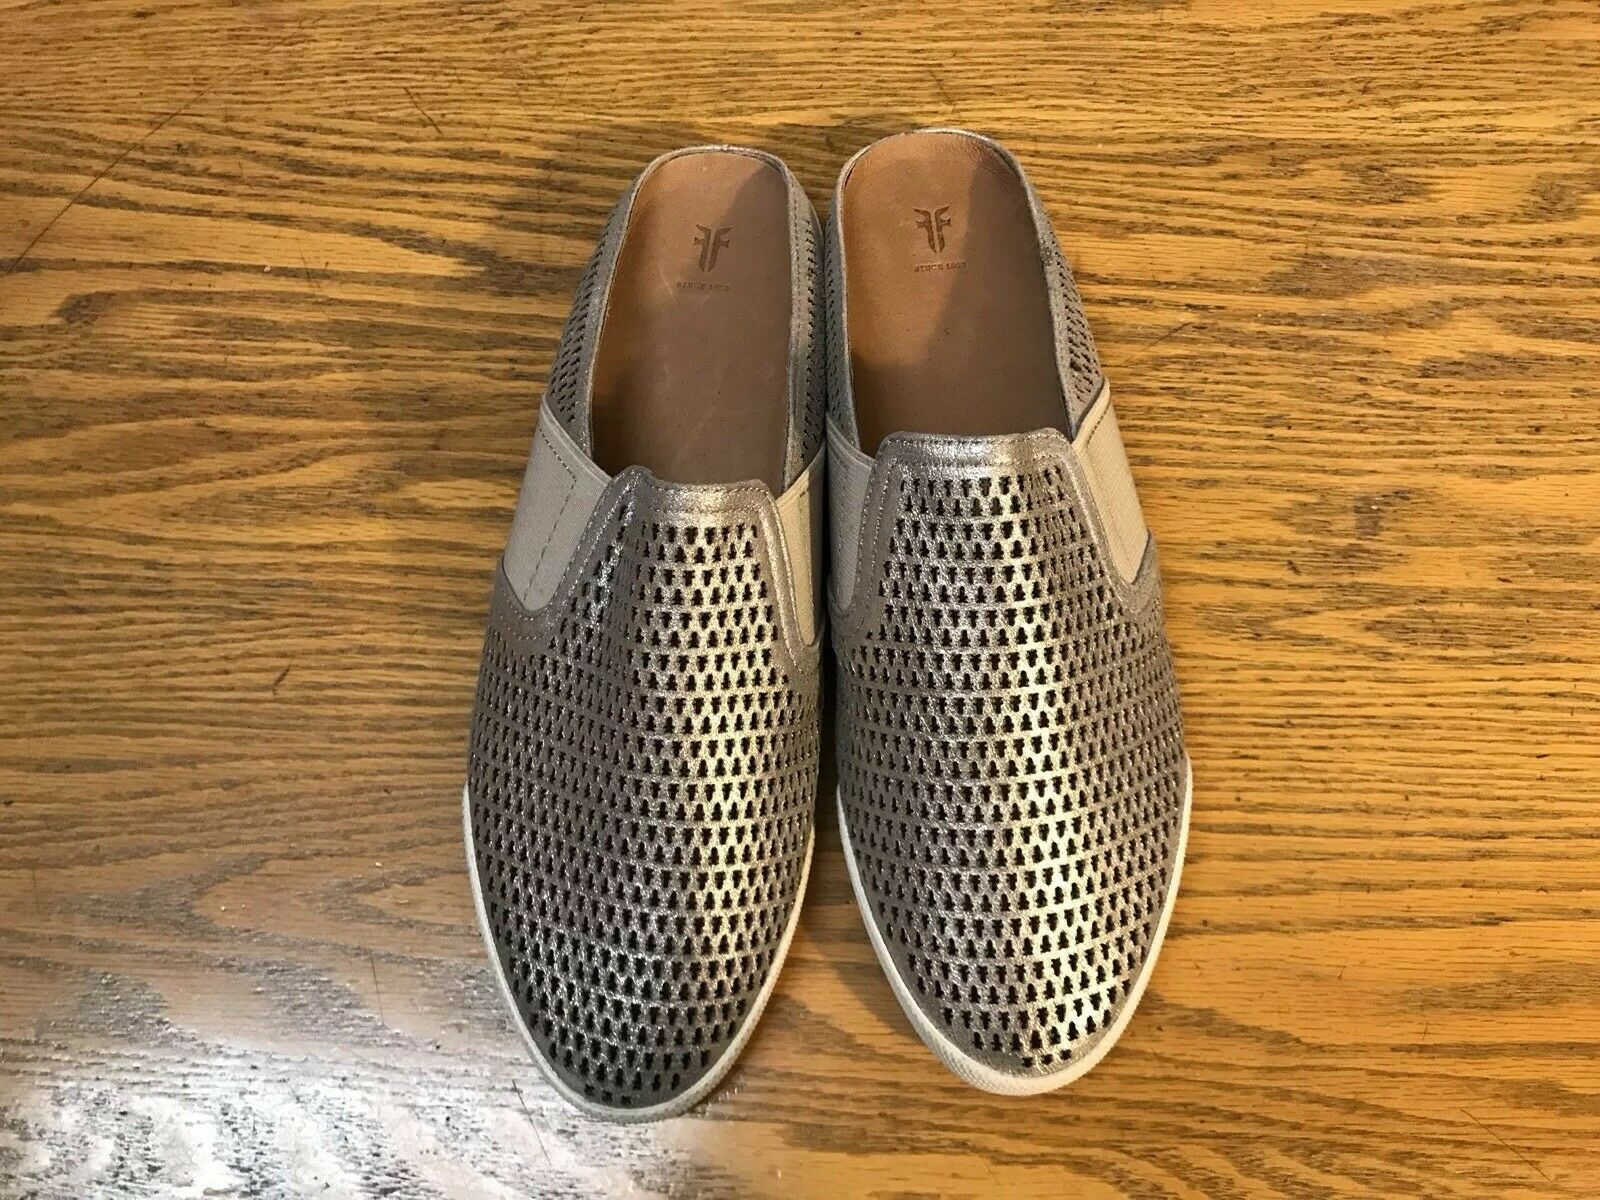 FRYE MELANIE PERFORATED LEATHER MULE SHOES NEW SIZE SIZE SIZE 8.5 8c8343